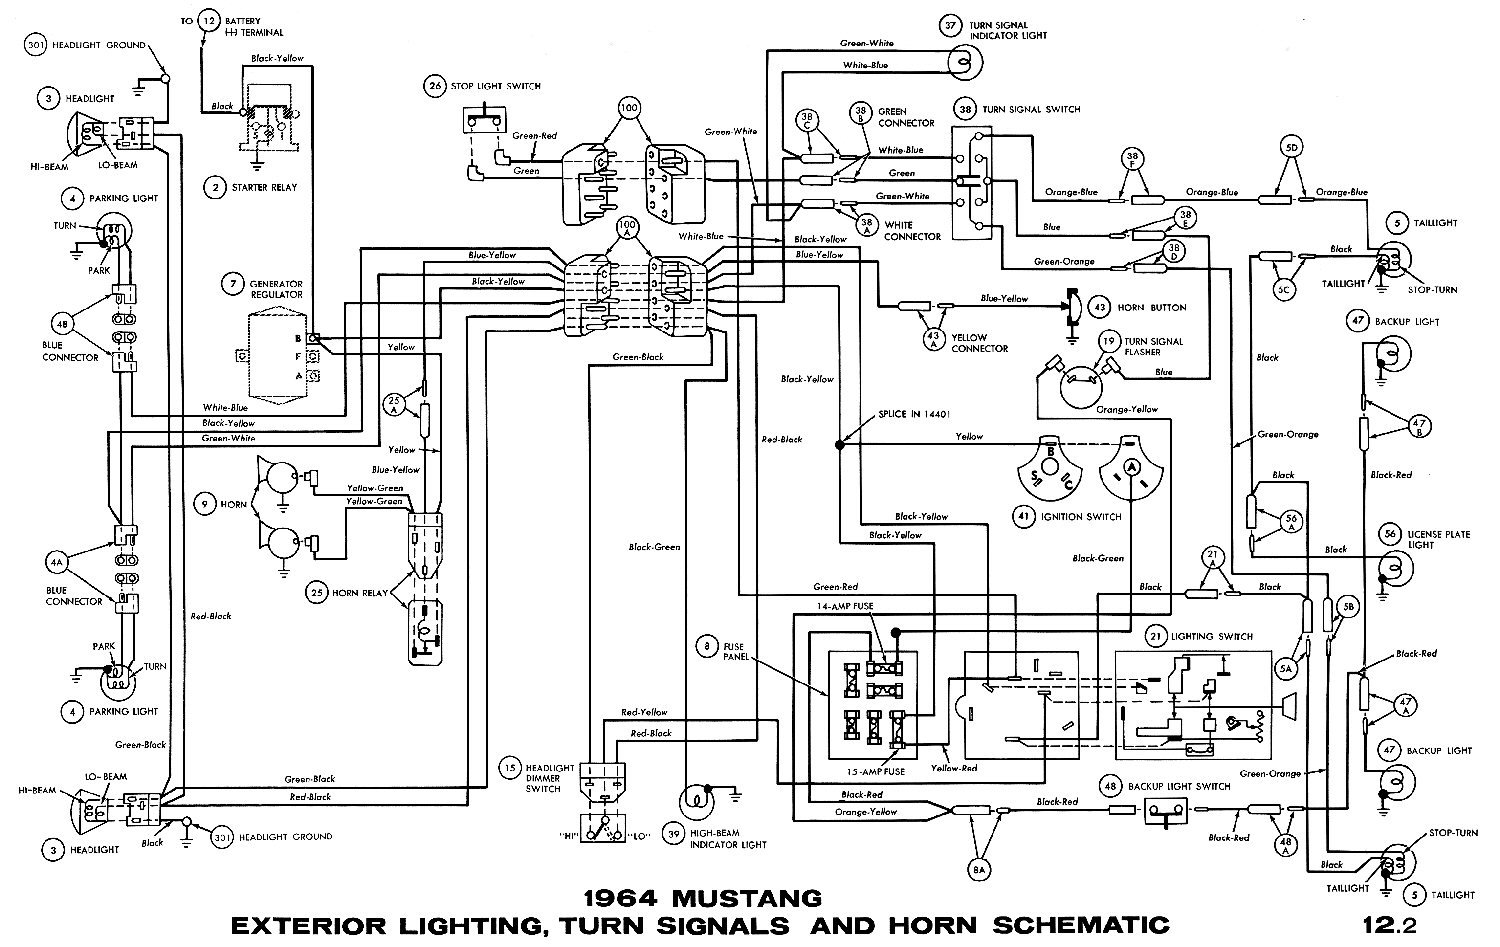 1964½ Mustang - Exterior Lightning, Turn Signals and Horn Schematic